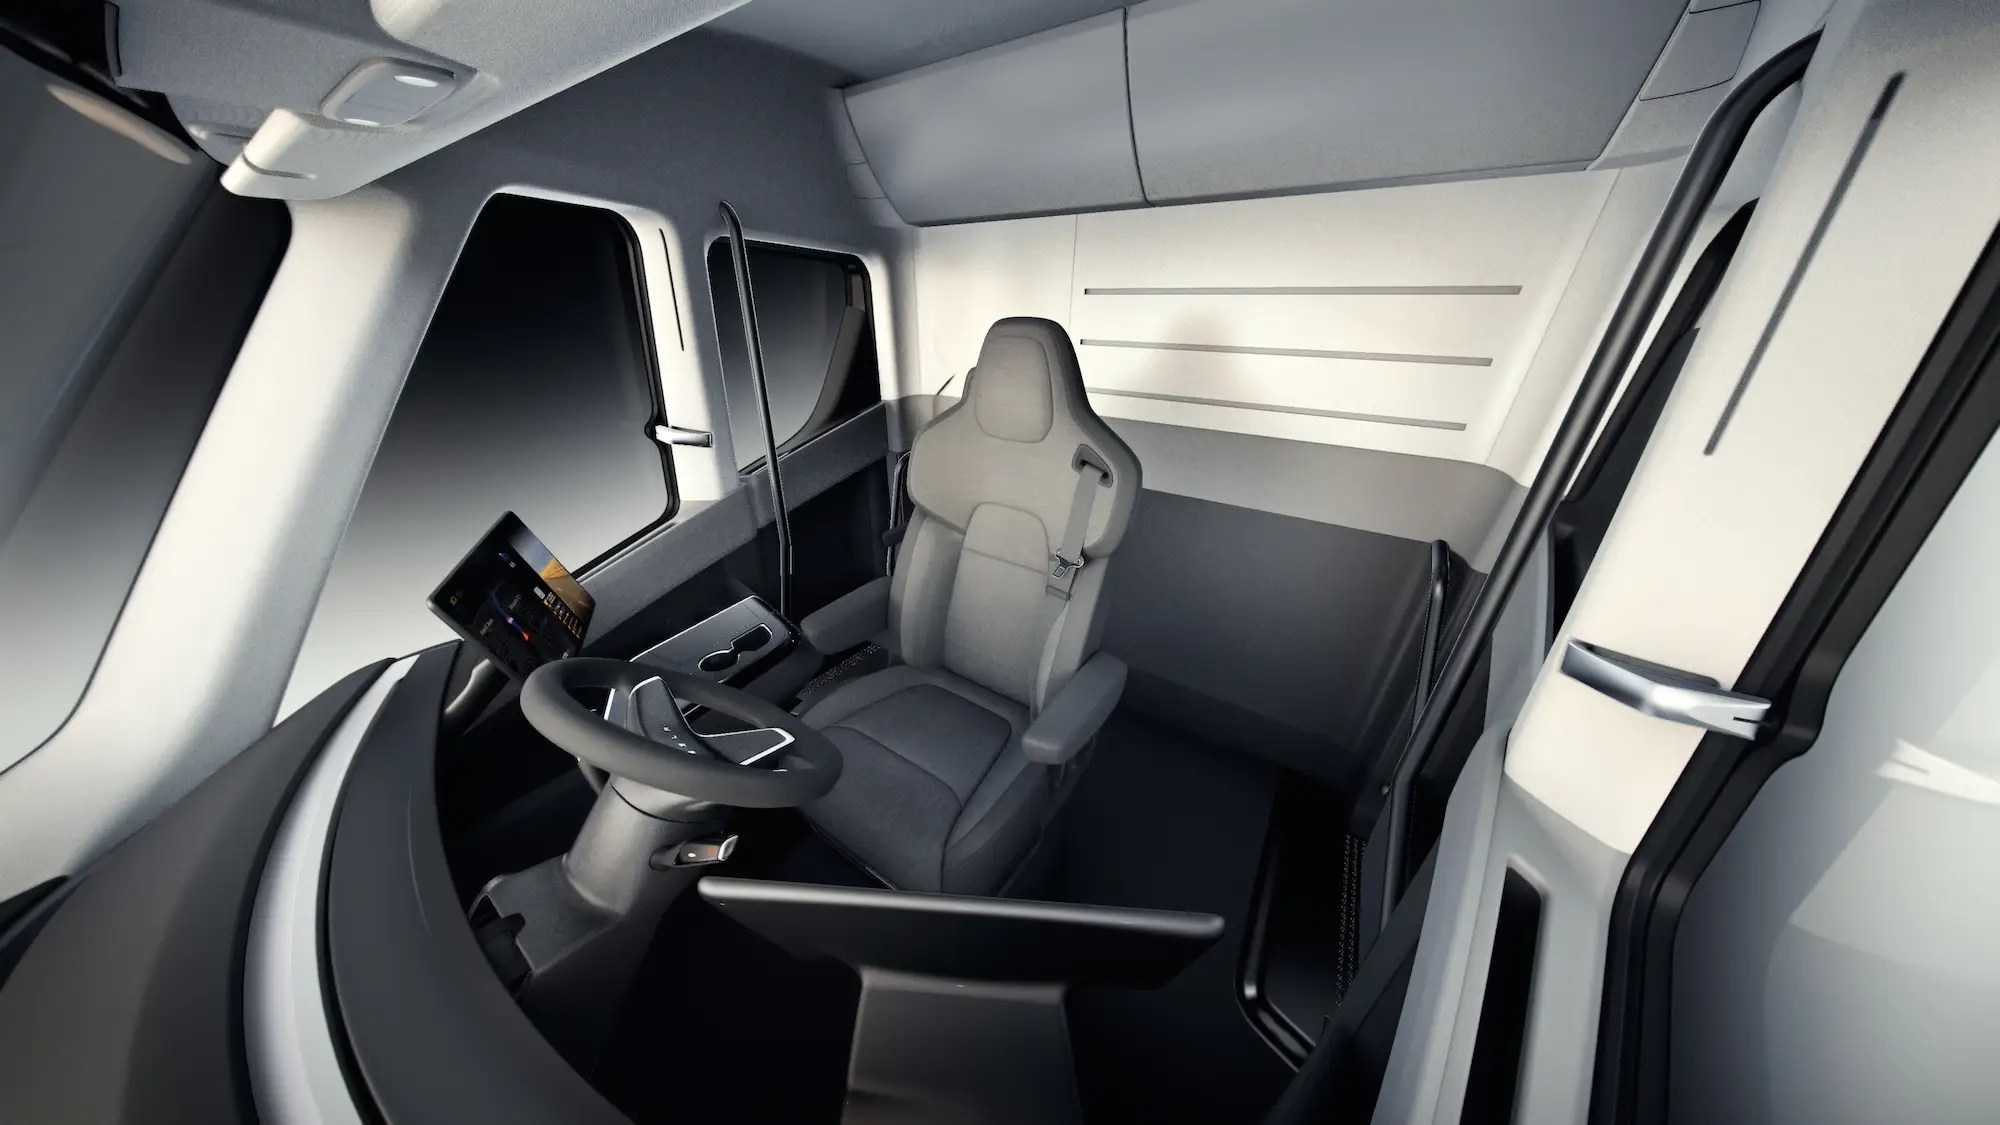 The interior of the vehicle is minimalistic and designed around the comfort of the driver.